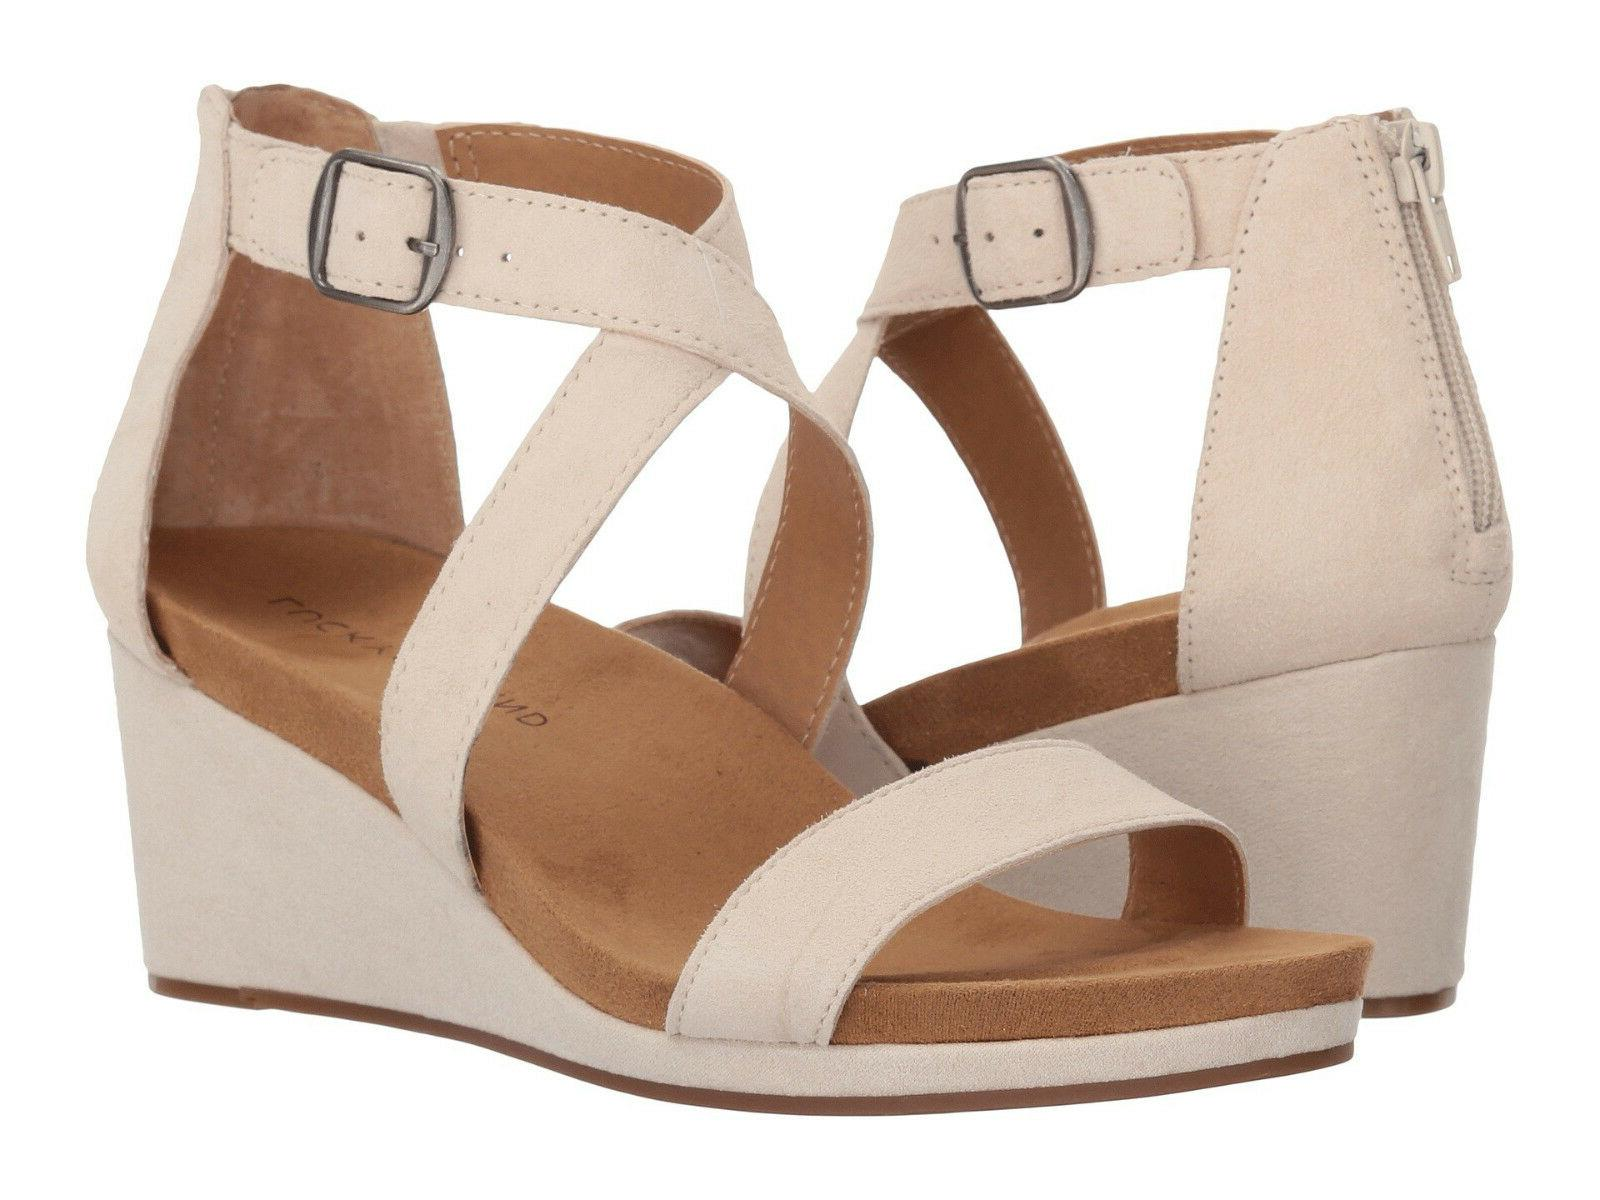 New In Box Womens Lucky Brand KENADEE Sandshell Suede Wedge